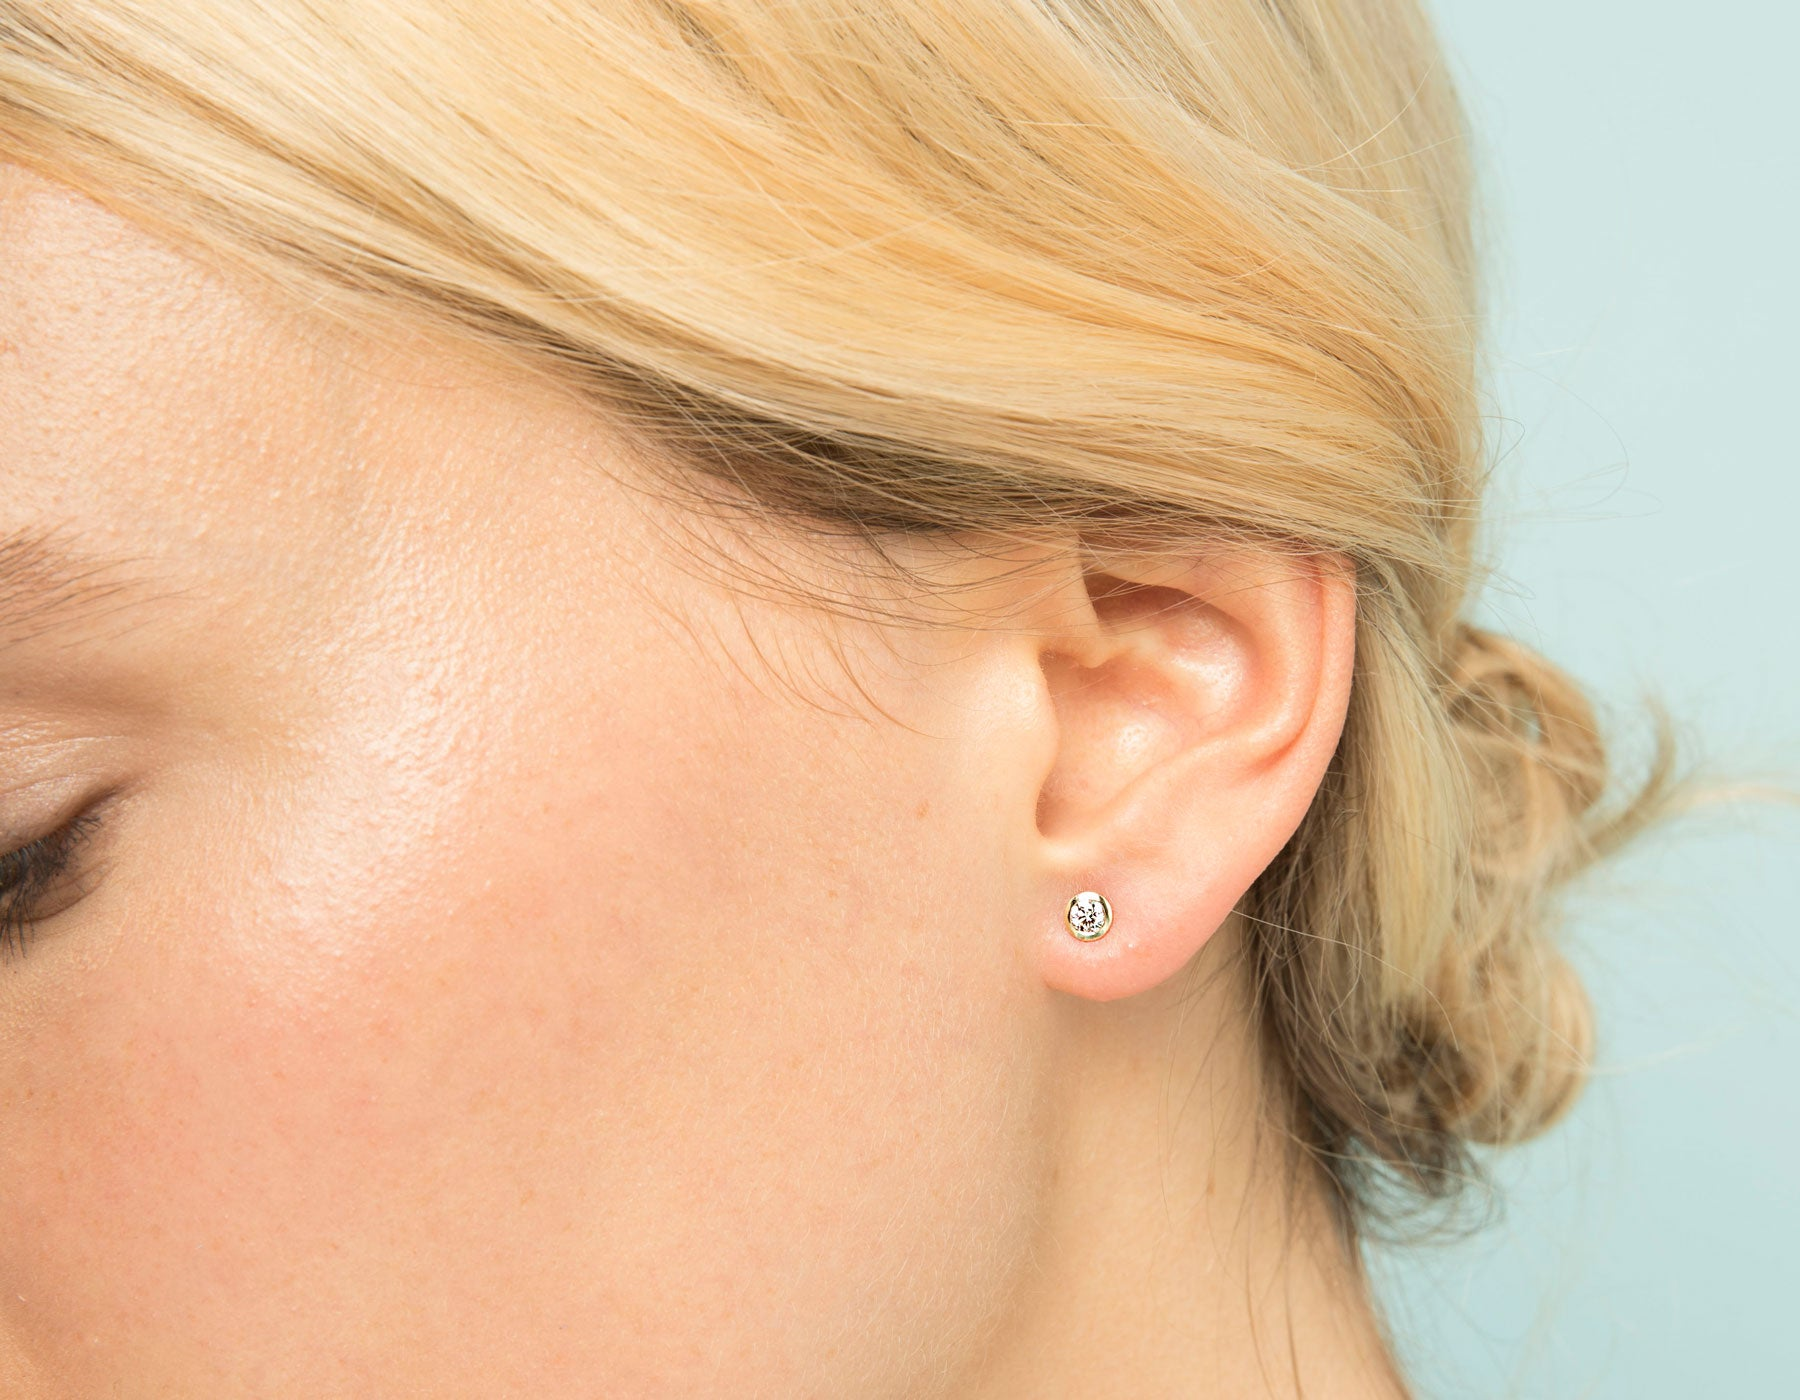 Model wearing dainty minimalist Round Diamond Bezel Earrings by Vrai in 14k solid gold